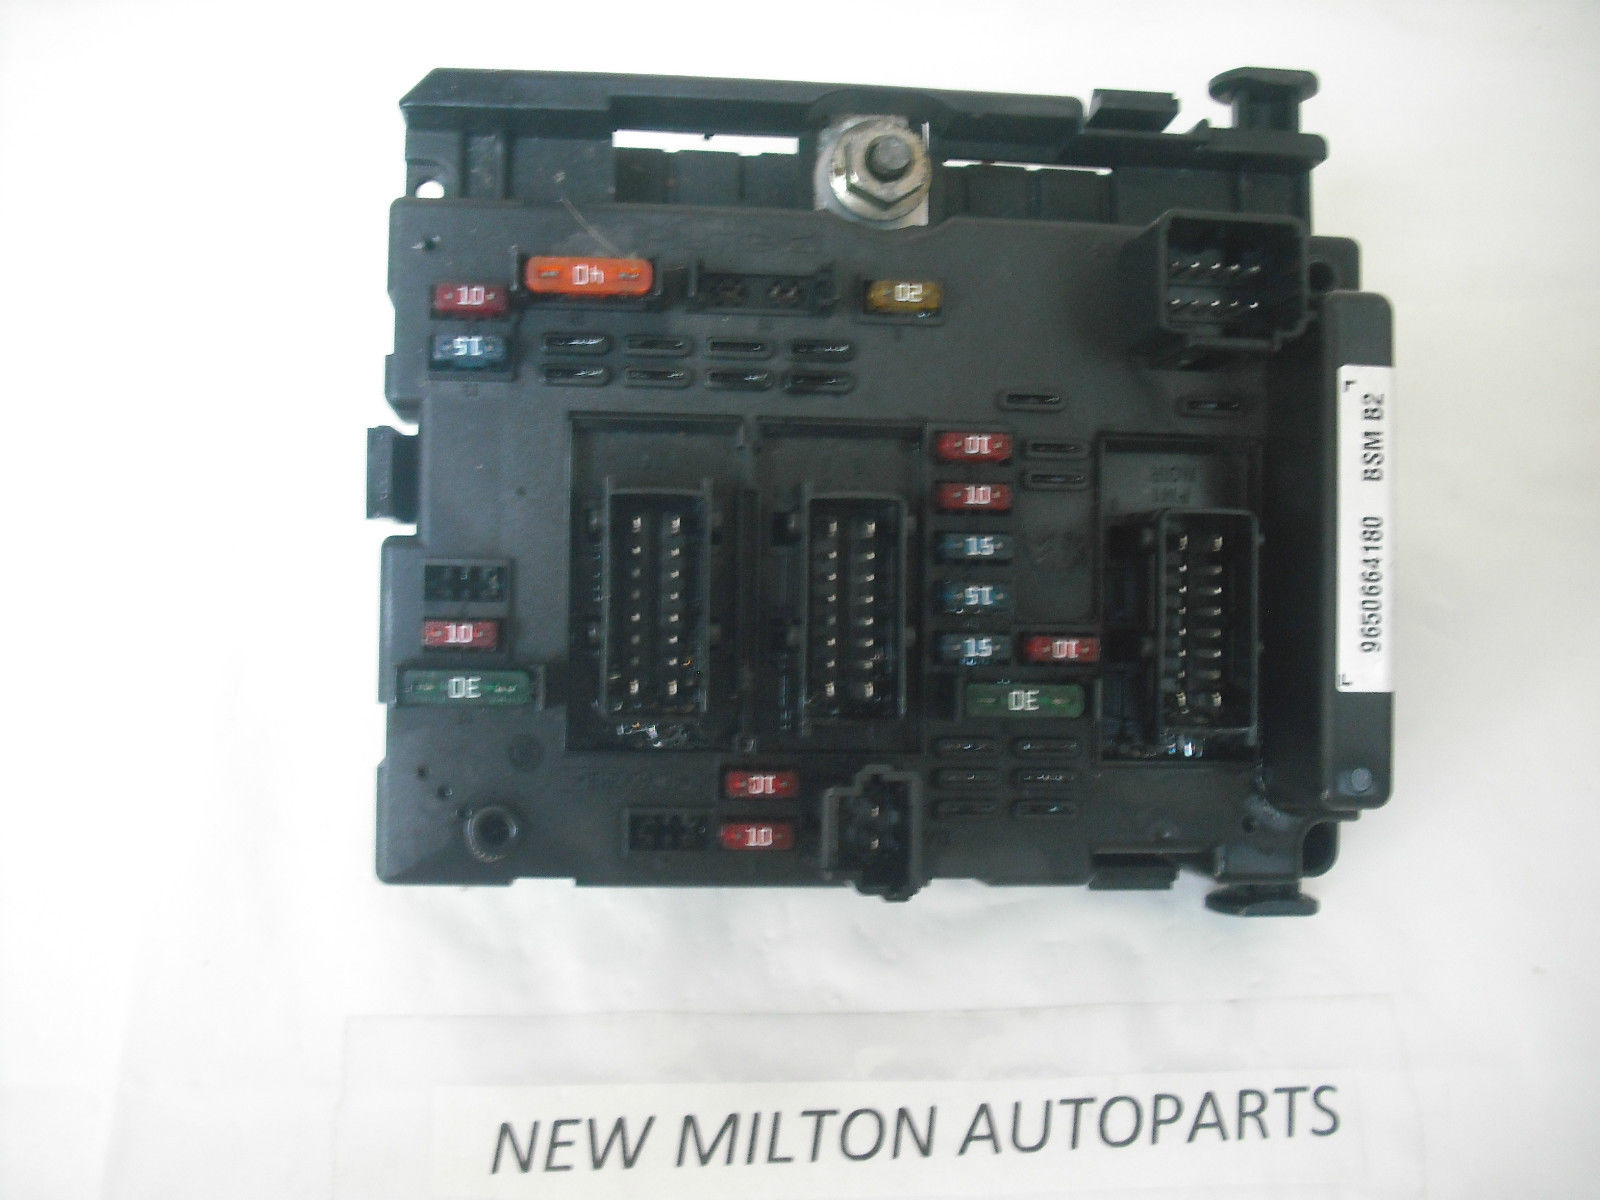 Citroen C3 Engine Fuse Box Layout Wiring Library Manual 2002 2005 Control Module Bsm B2 9650664180